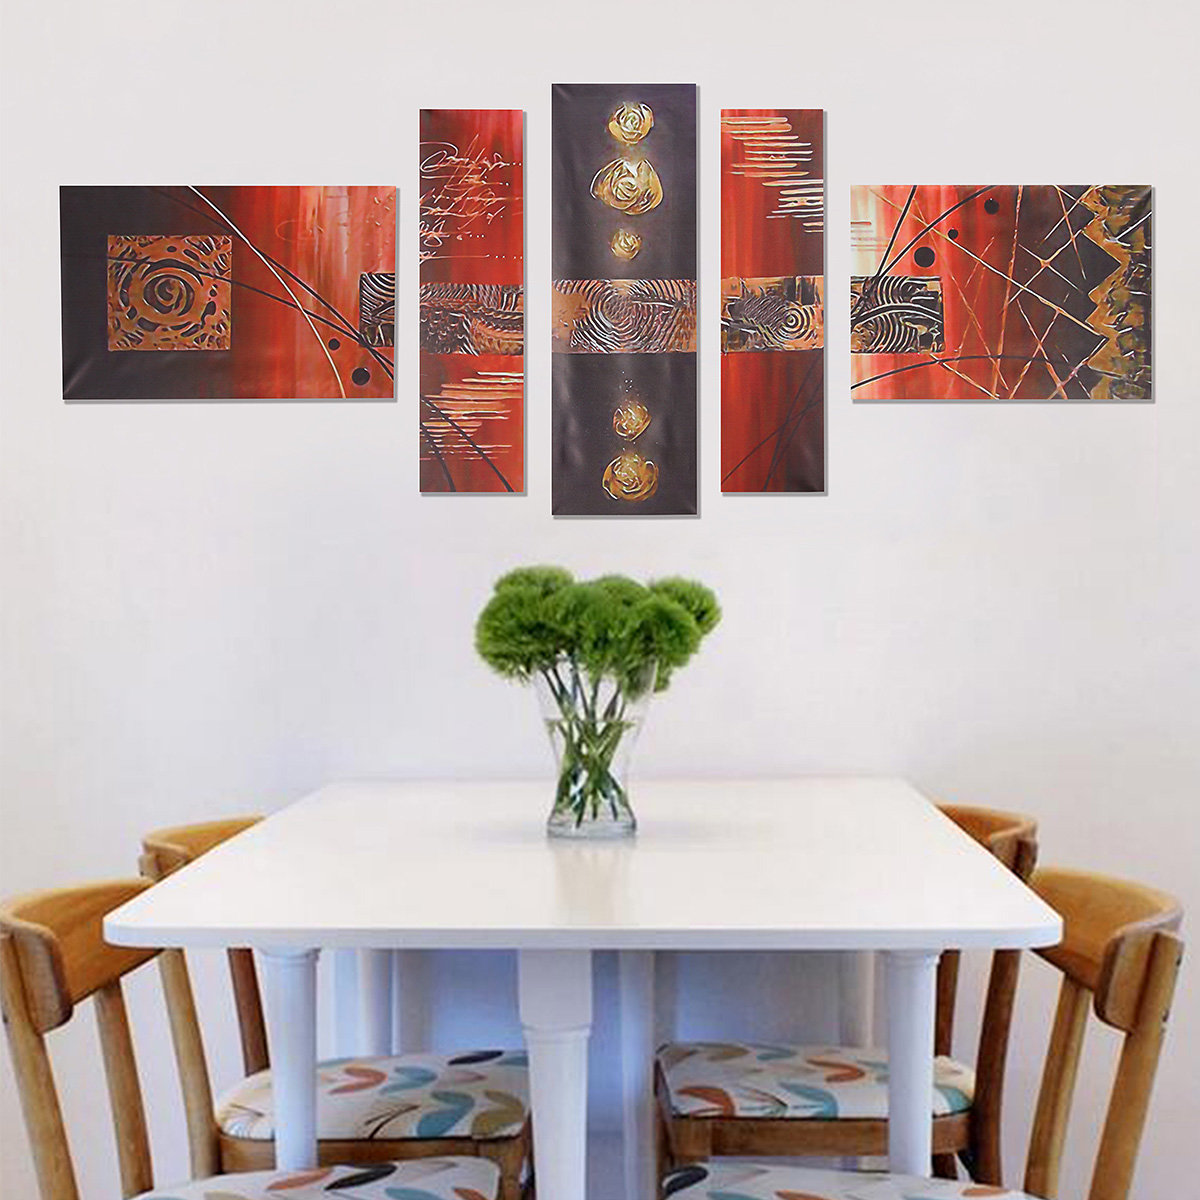 5PCS Unframed Modern Combined Abstract Art Oil Painting Canvas Wall Decor